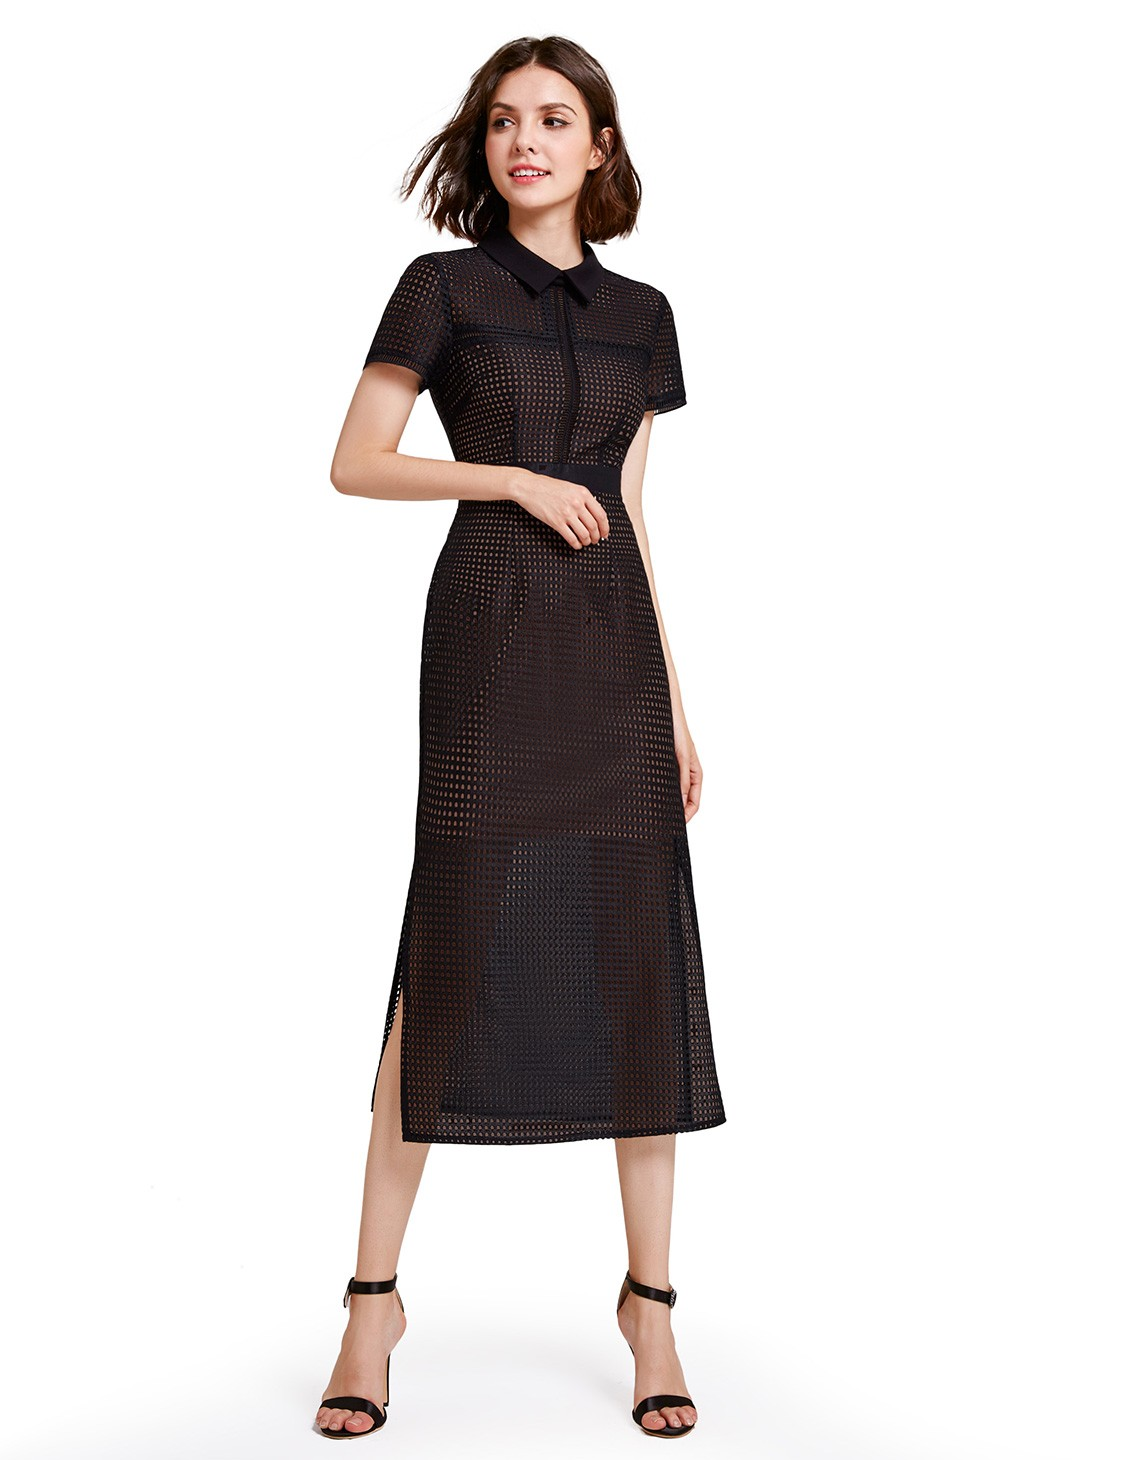 business casual dress length photo - 1